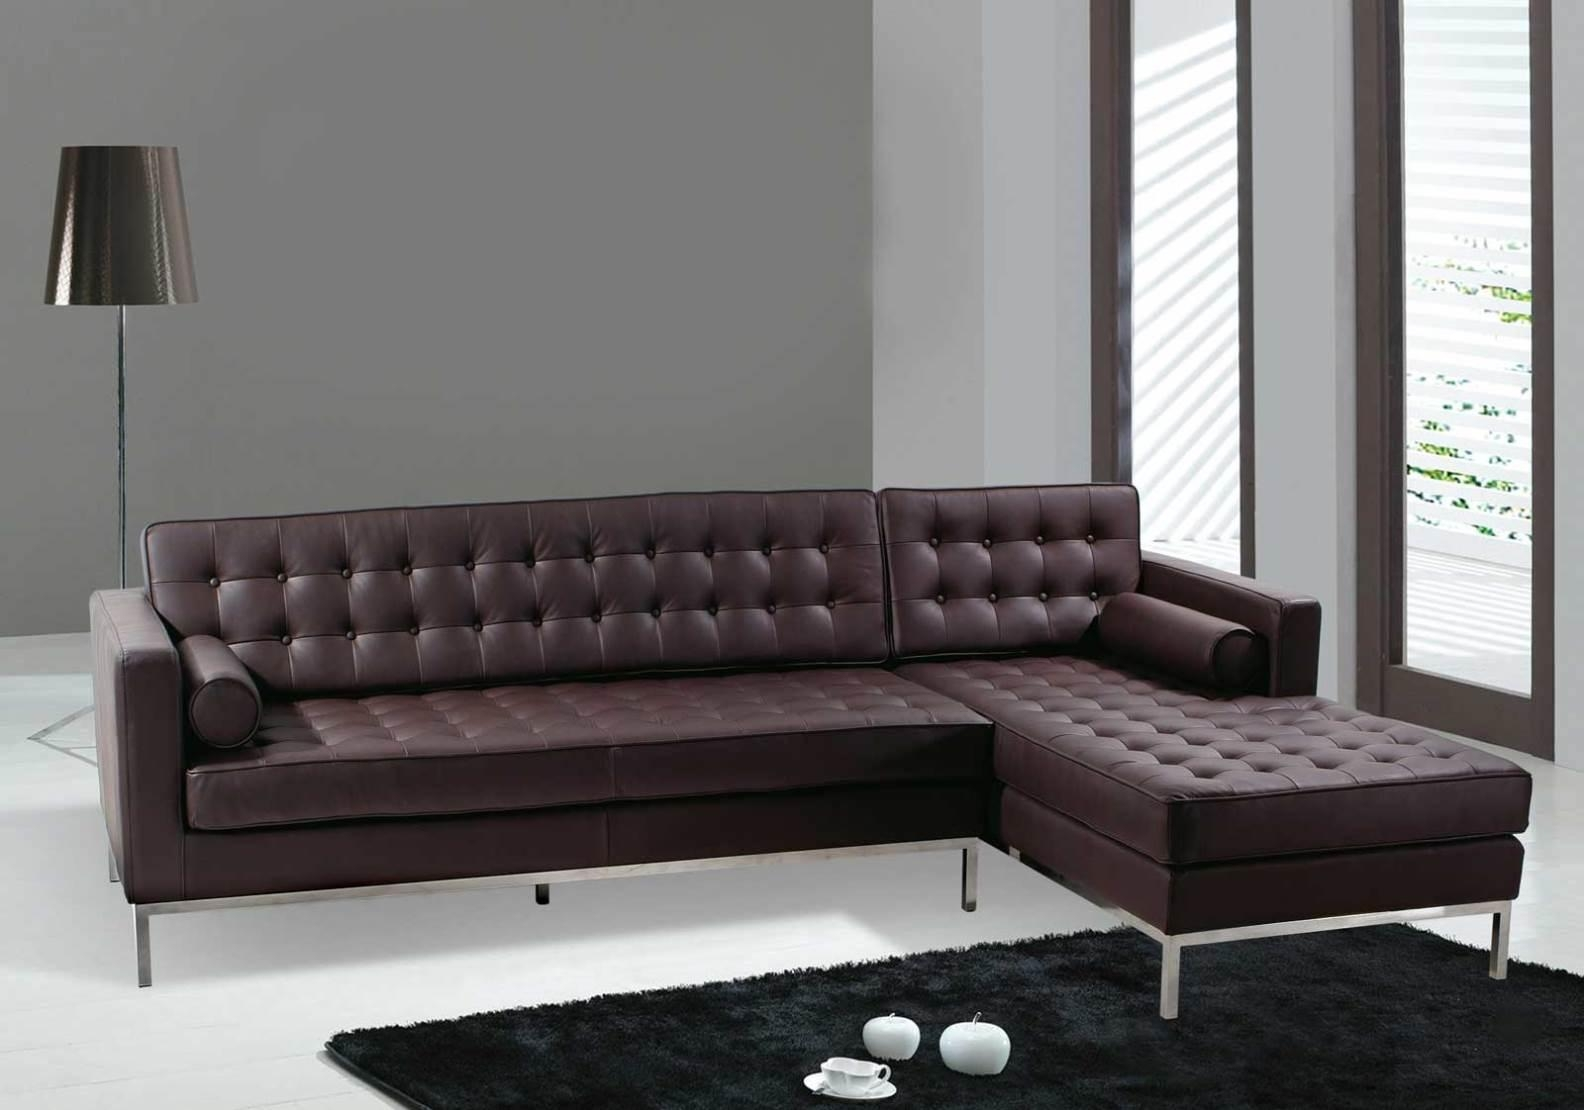 Modern Sofas Houston – Fjellkjeden Pertaining To Modern Sofas Houston (View 2 of 20)